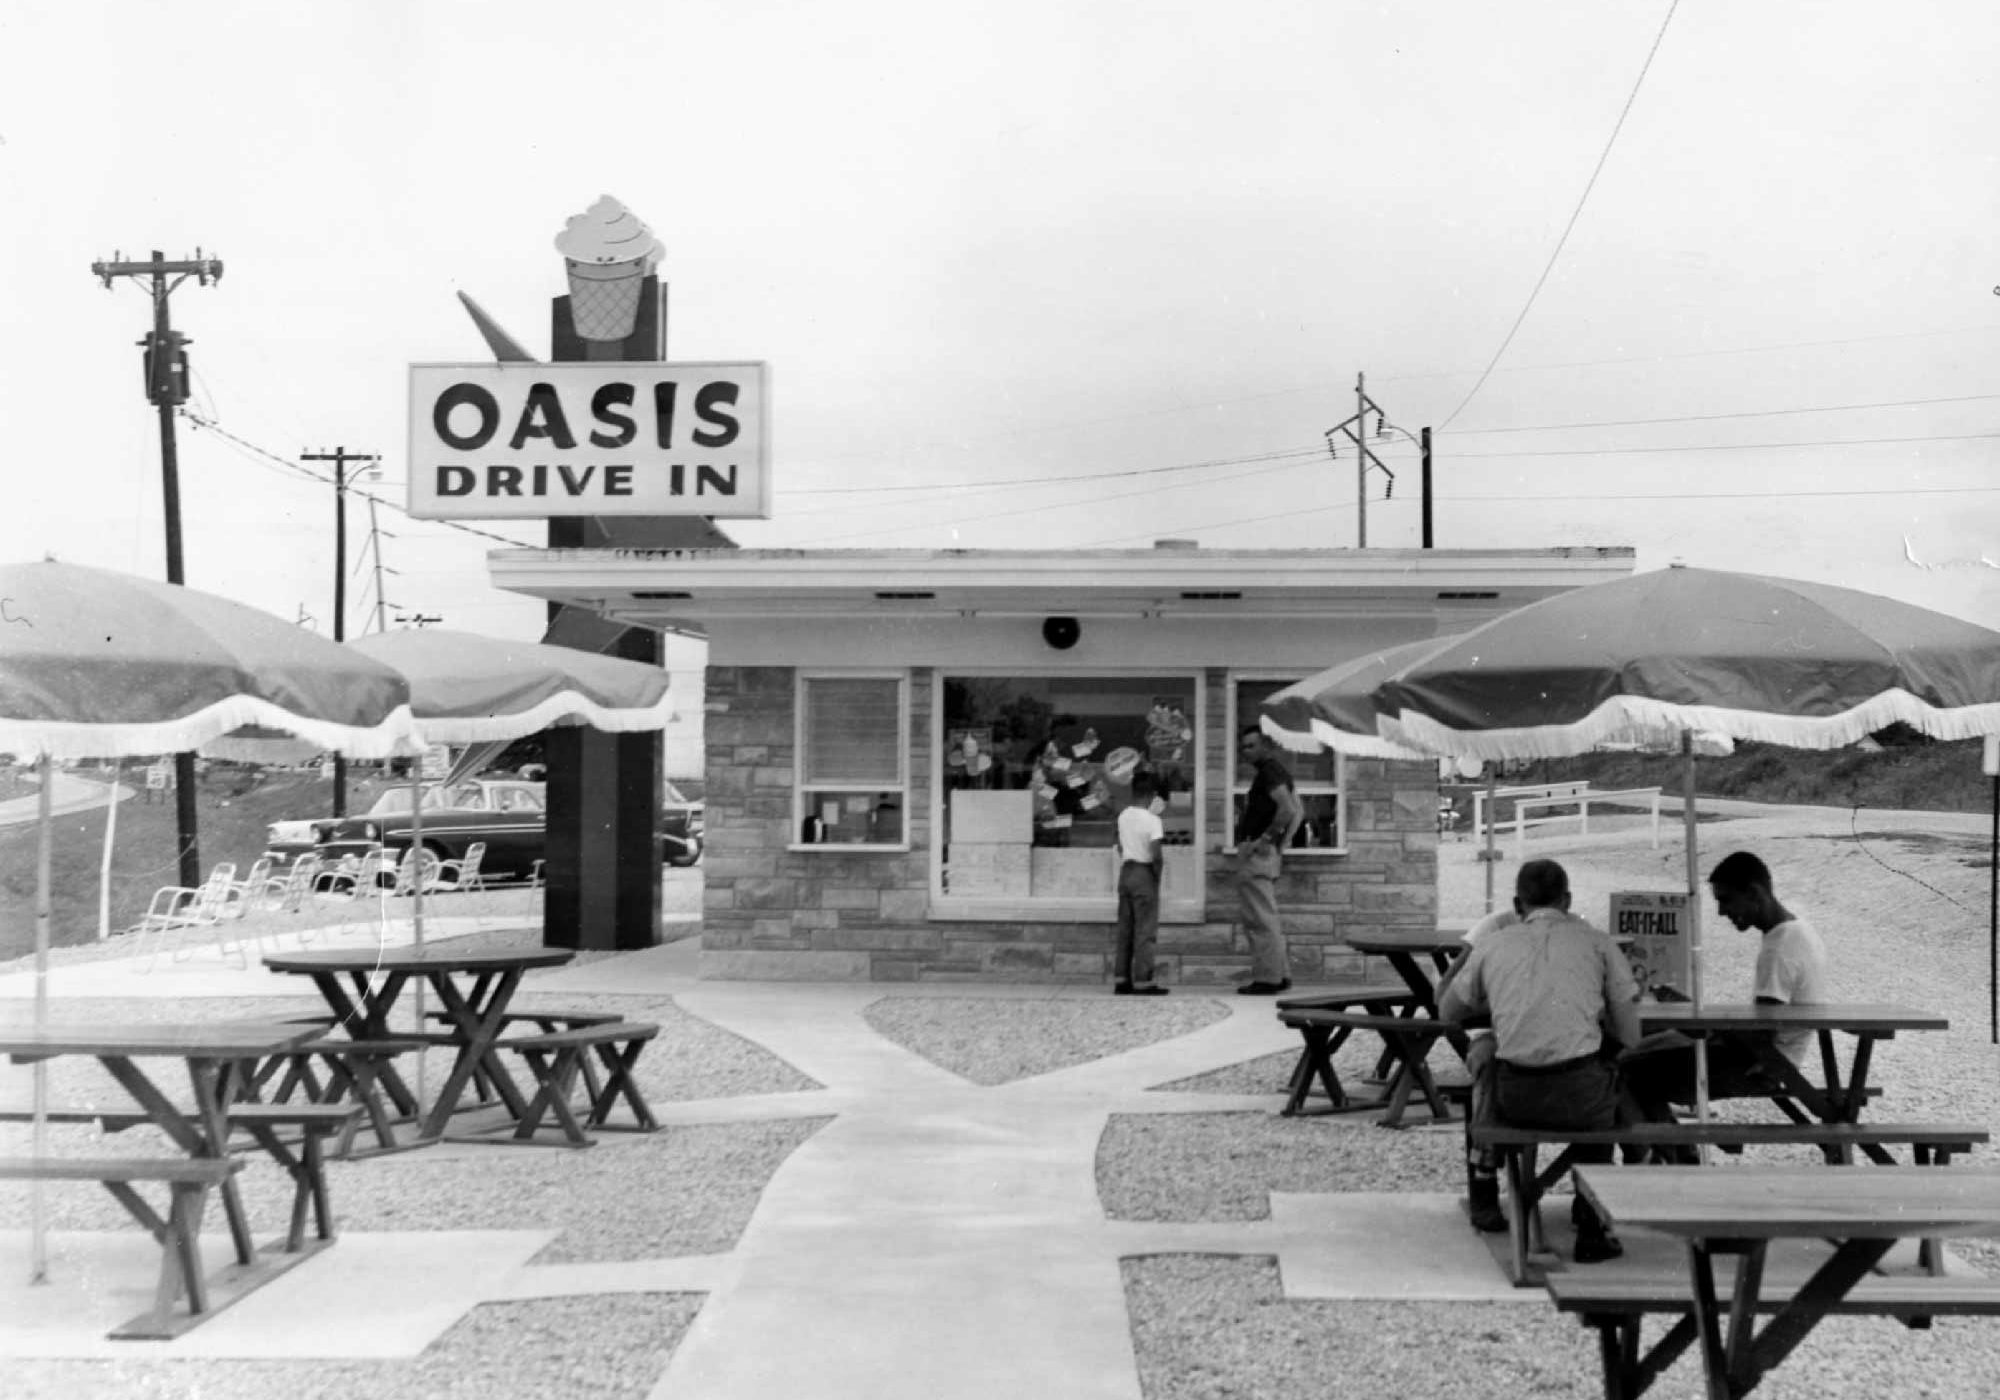 Oasis Drive In, Lexington, IL